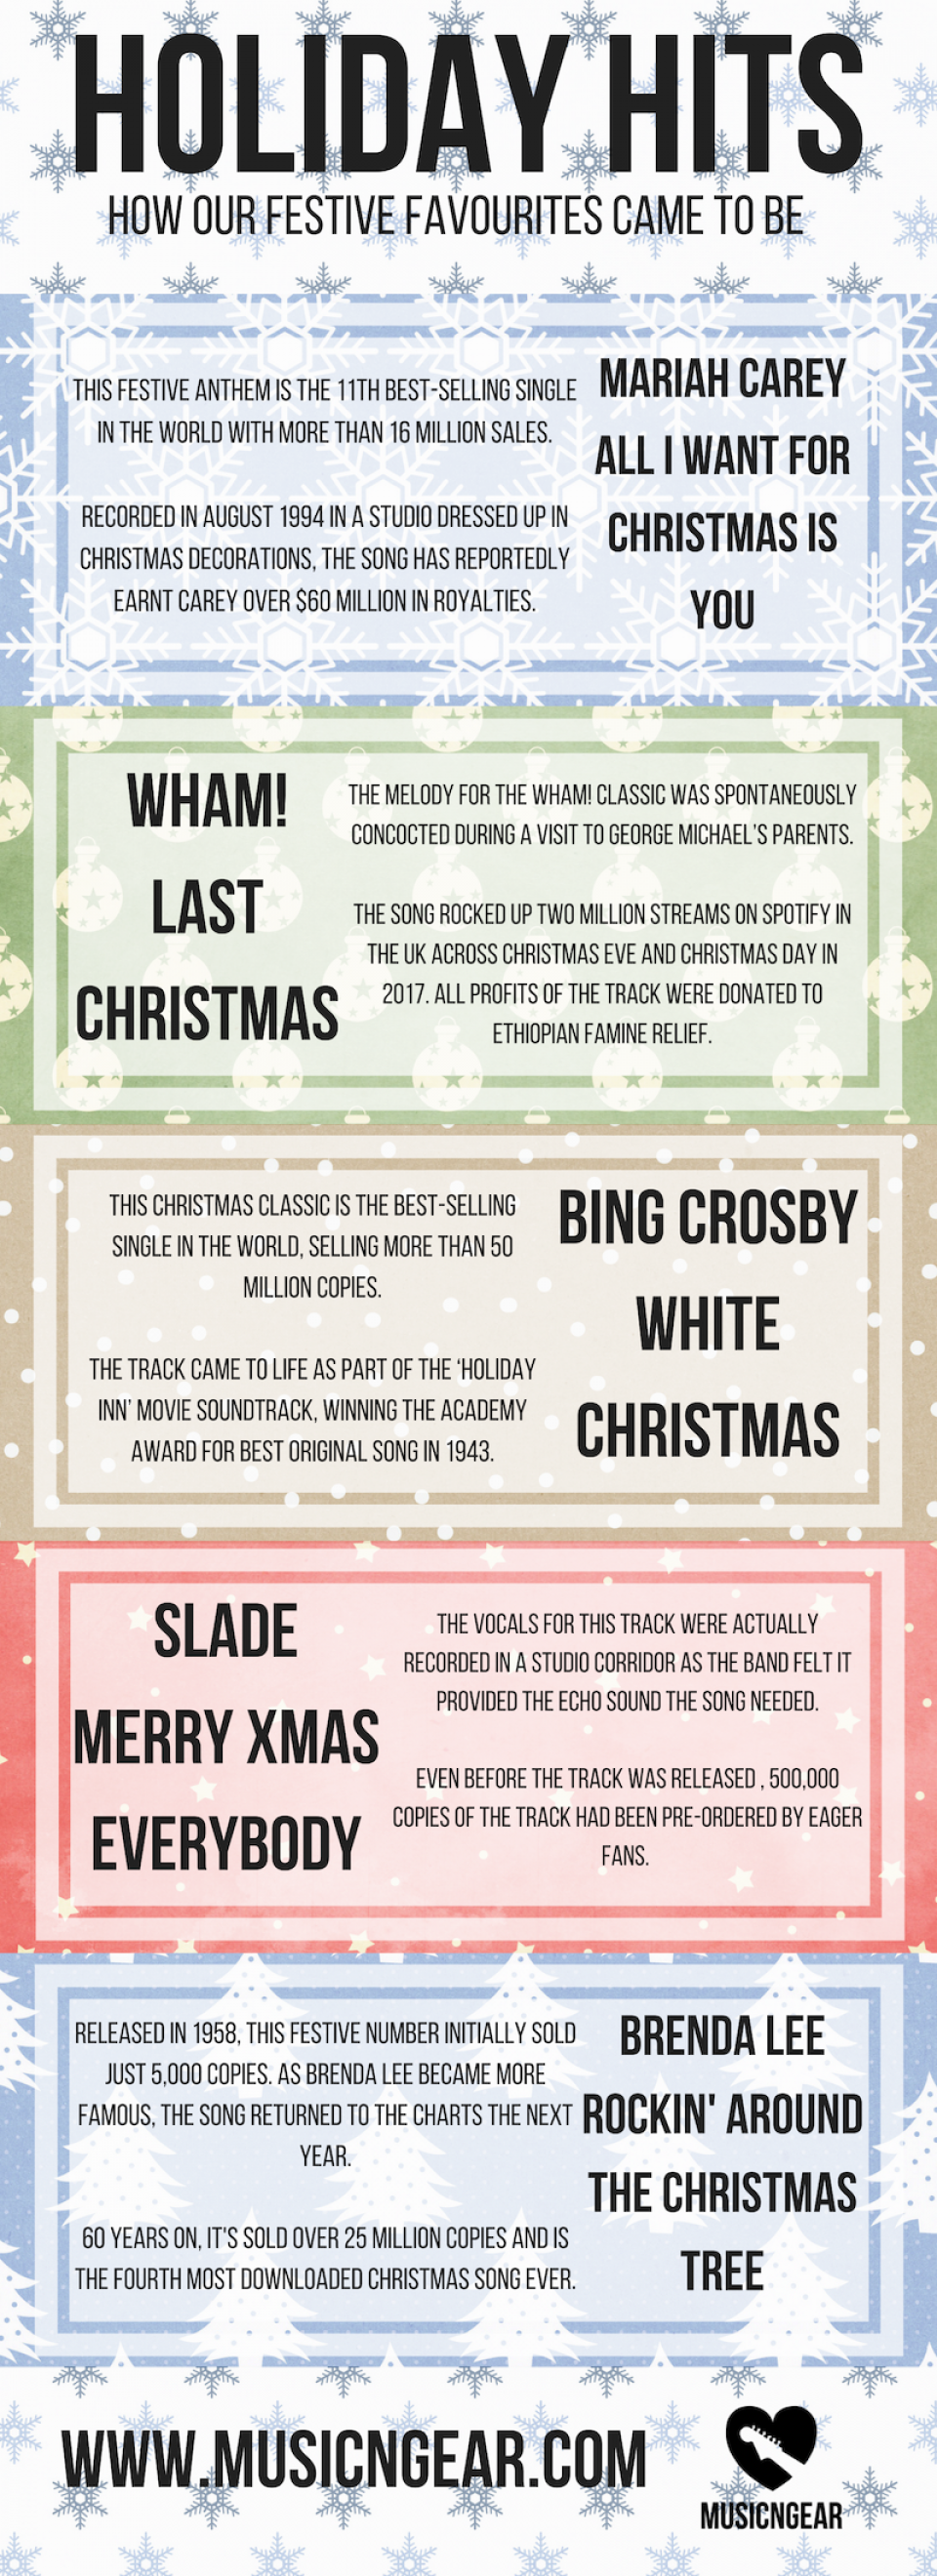 Article photo - Christmas Songs: The Origins Behind 7 Festive Favourites